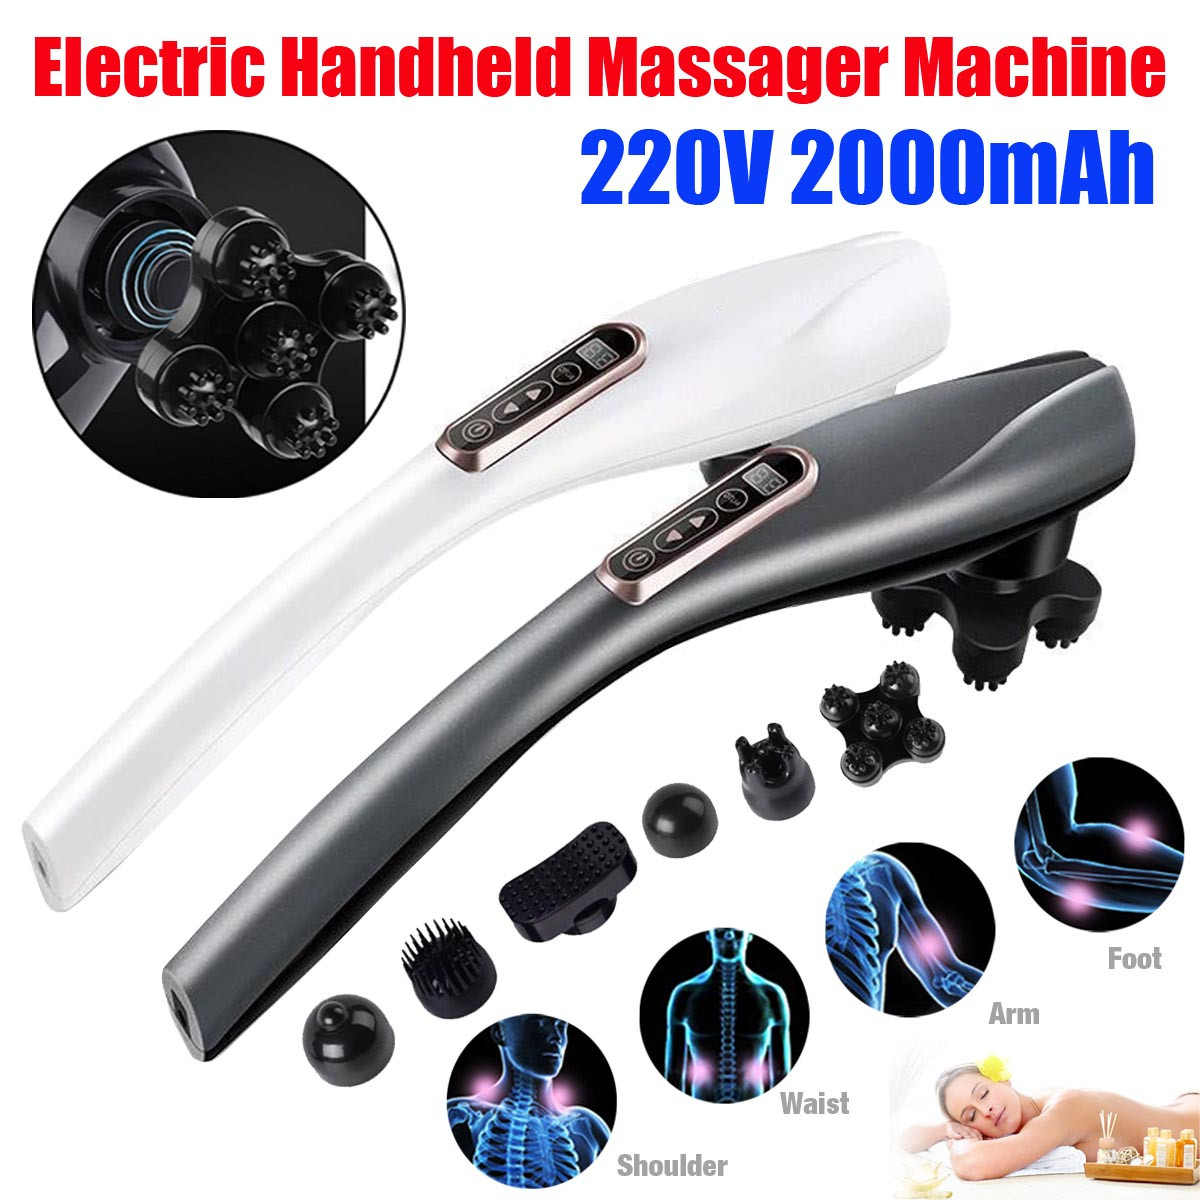 Electric Handheld Cordless Massage Full Body Neck Vertebra Back Muscle Relax Vibrating Tissue Massage Health Care With 6 Heads